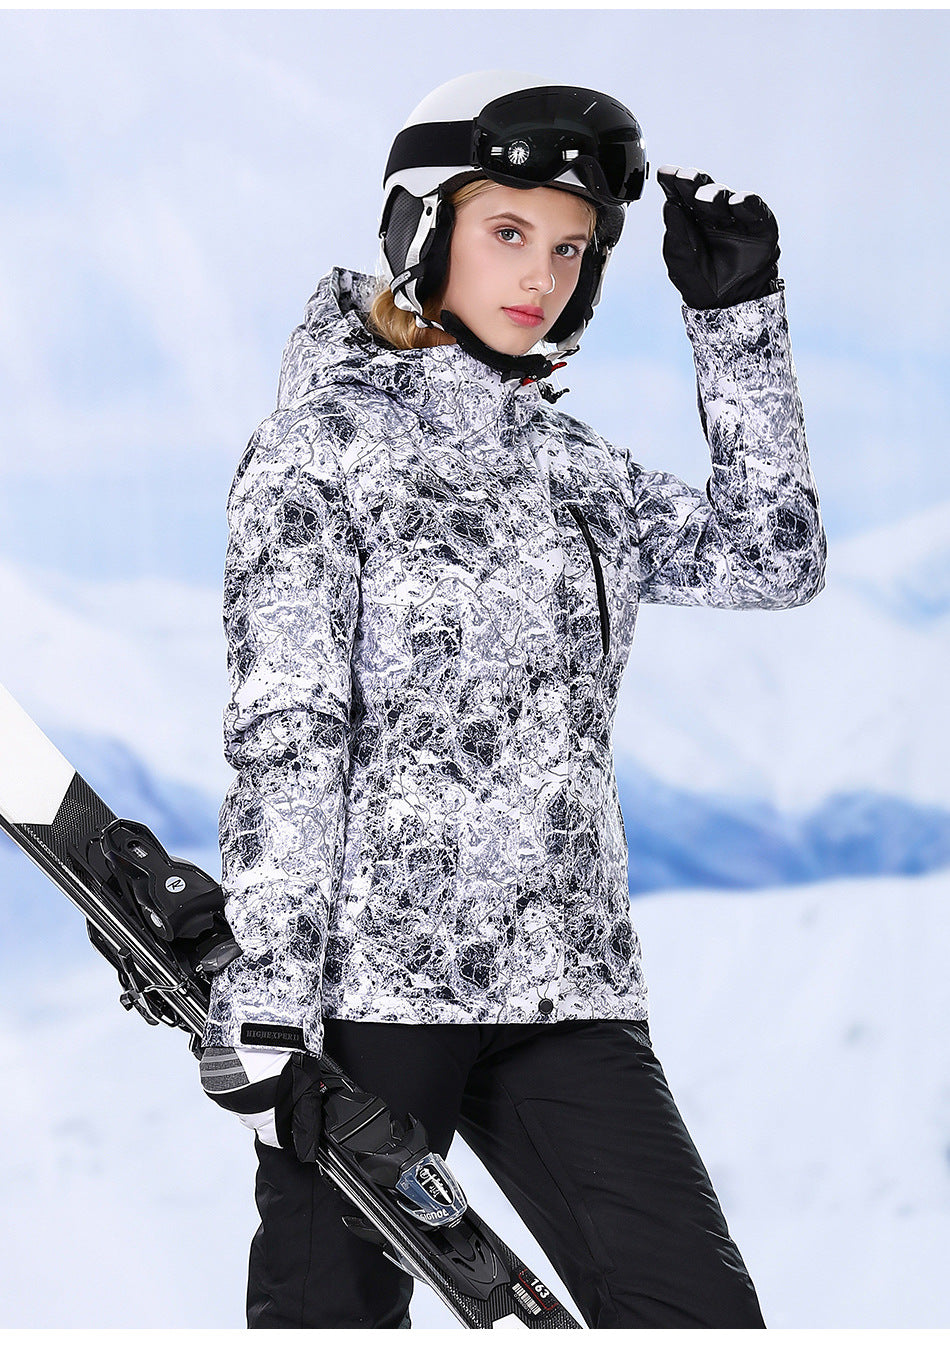 Women's High Experience Winter Explore Ski Jacket